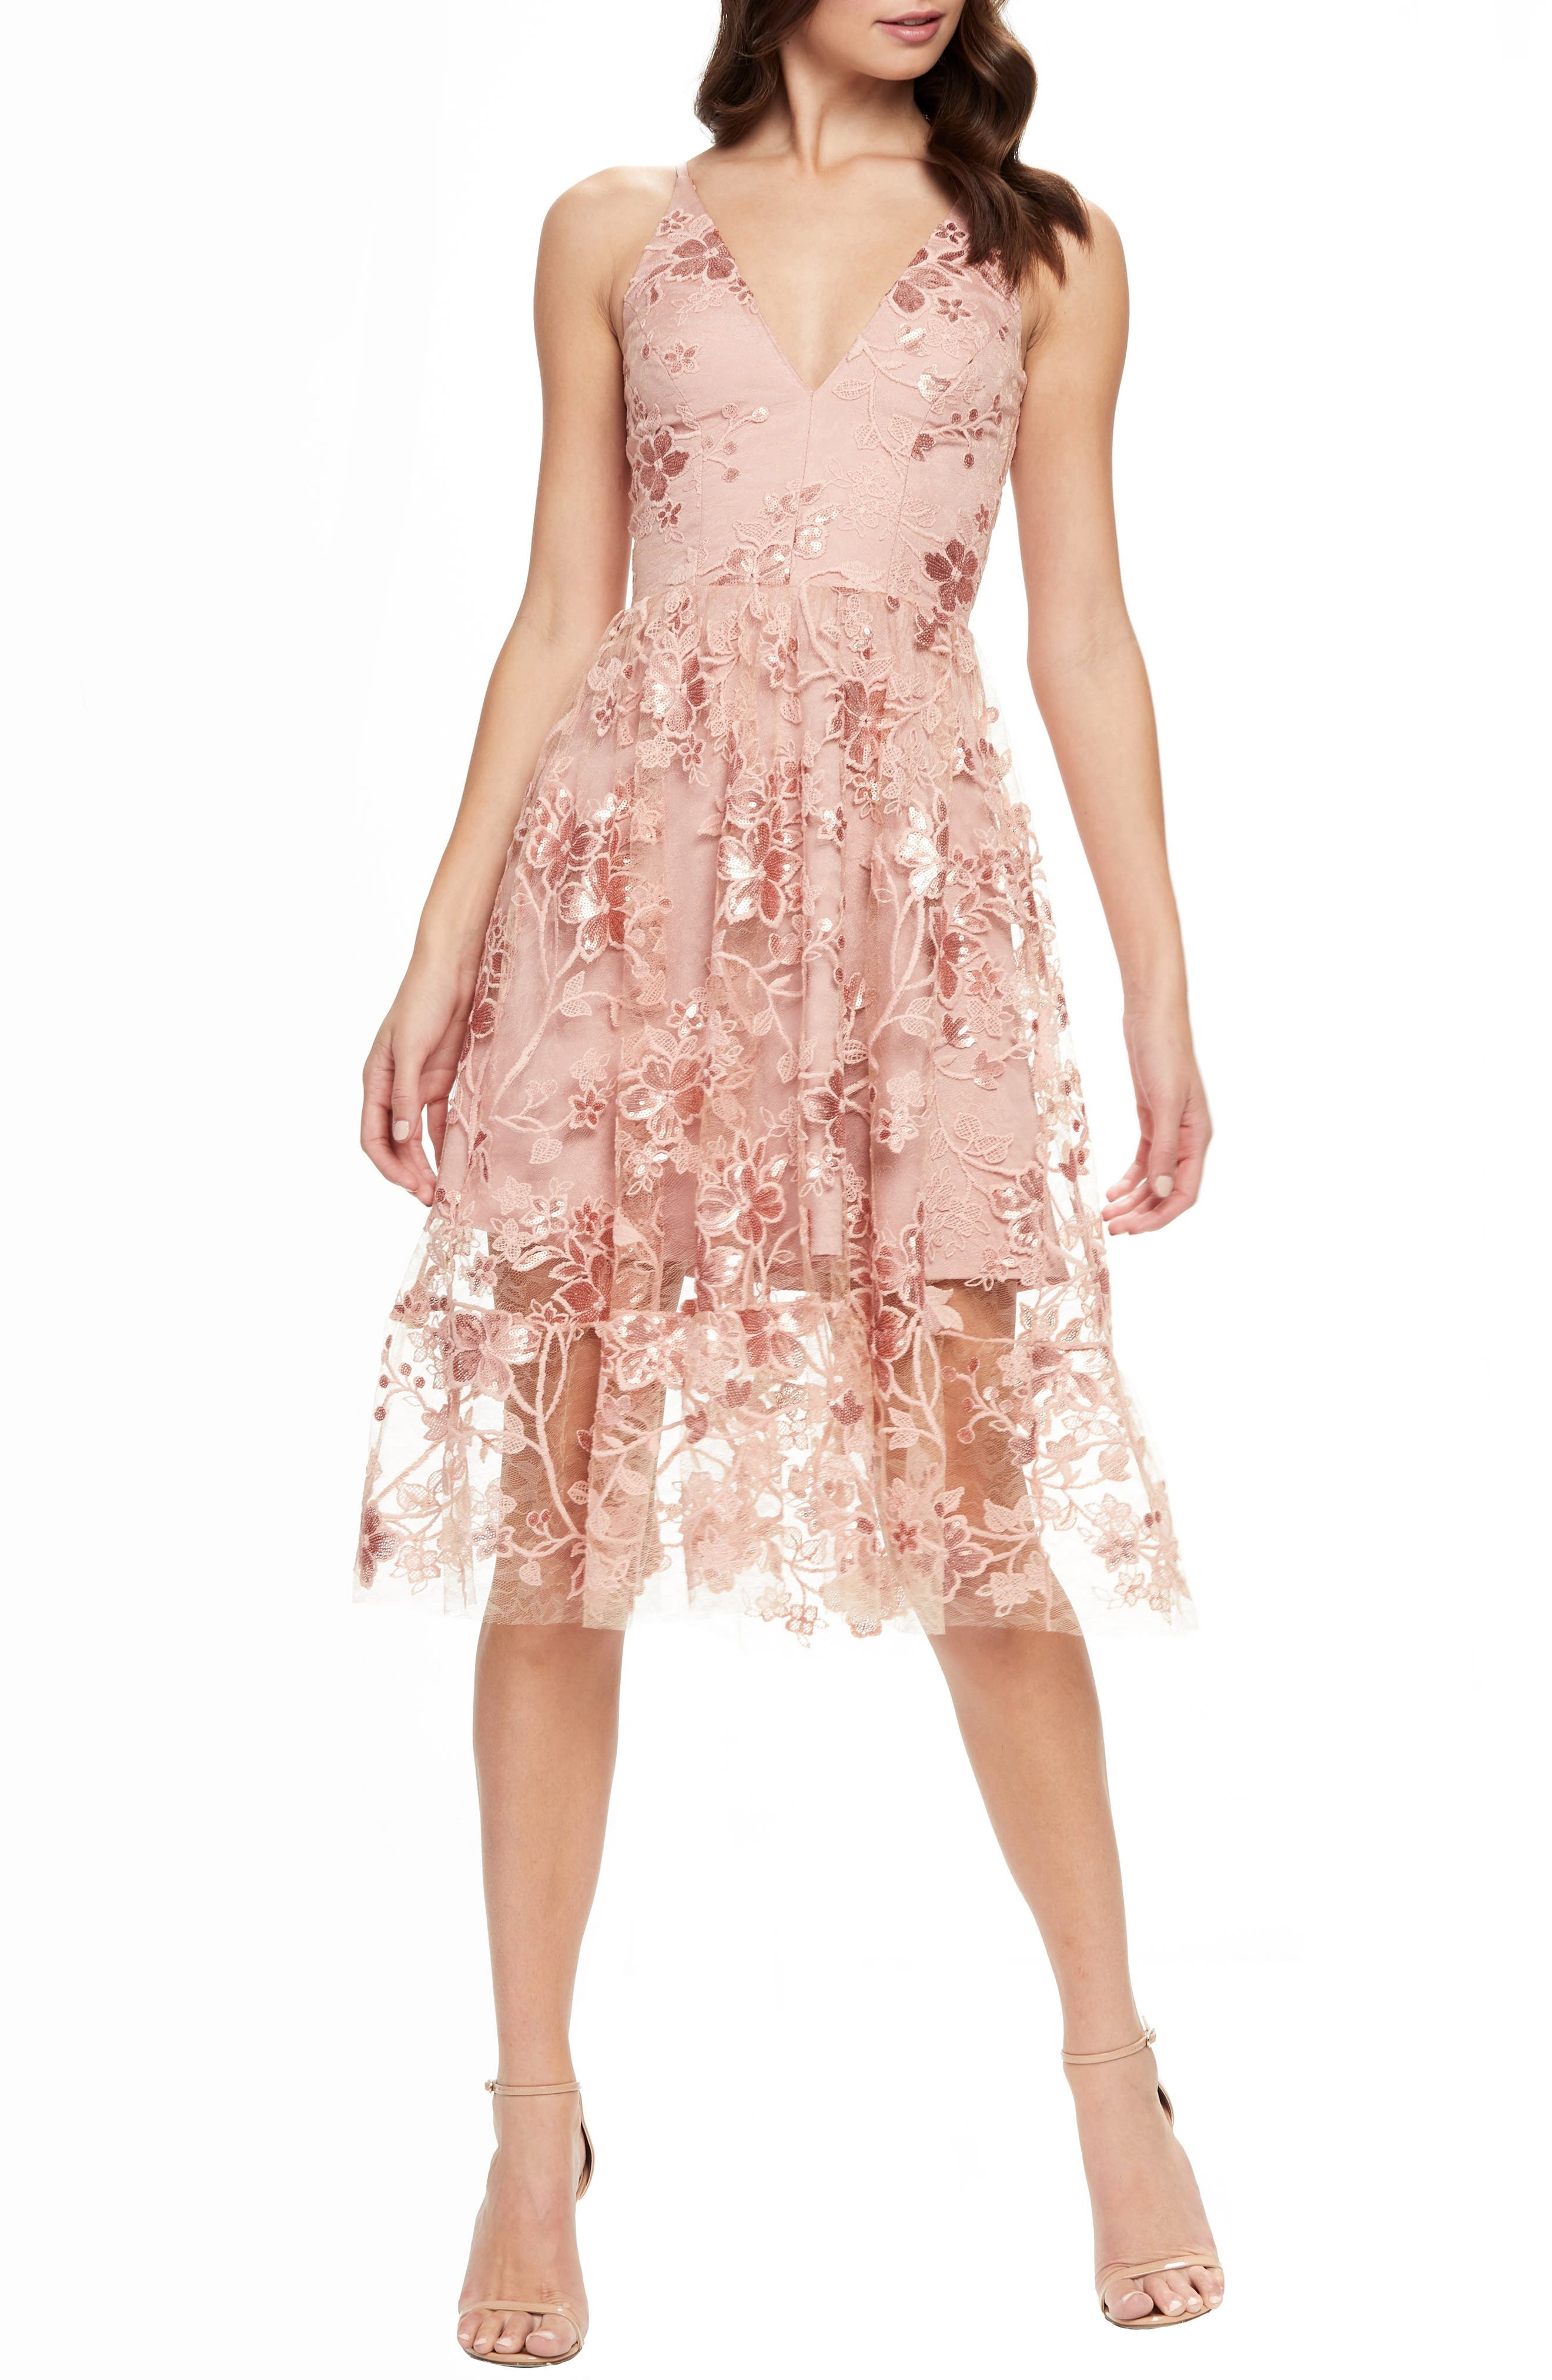 DRESS THE POPULATION Ally 3D Floral Mesh Cocktail Dress, Main, color, DUSTY PINK